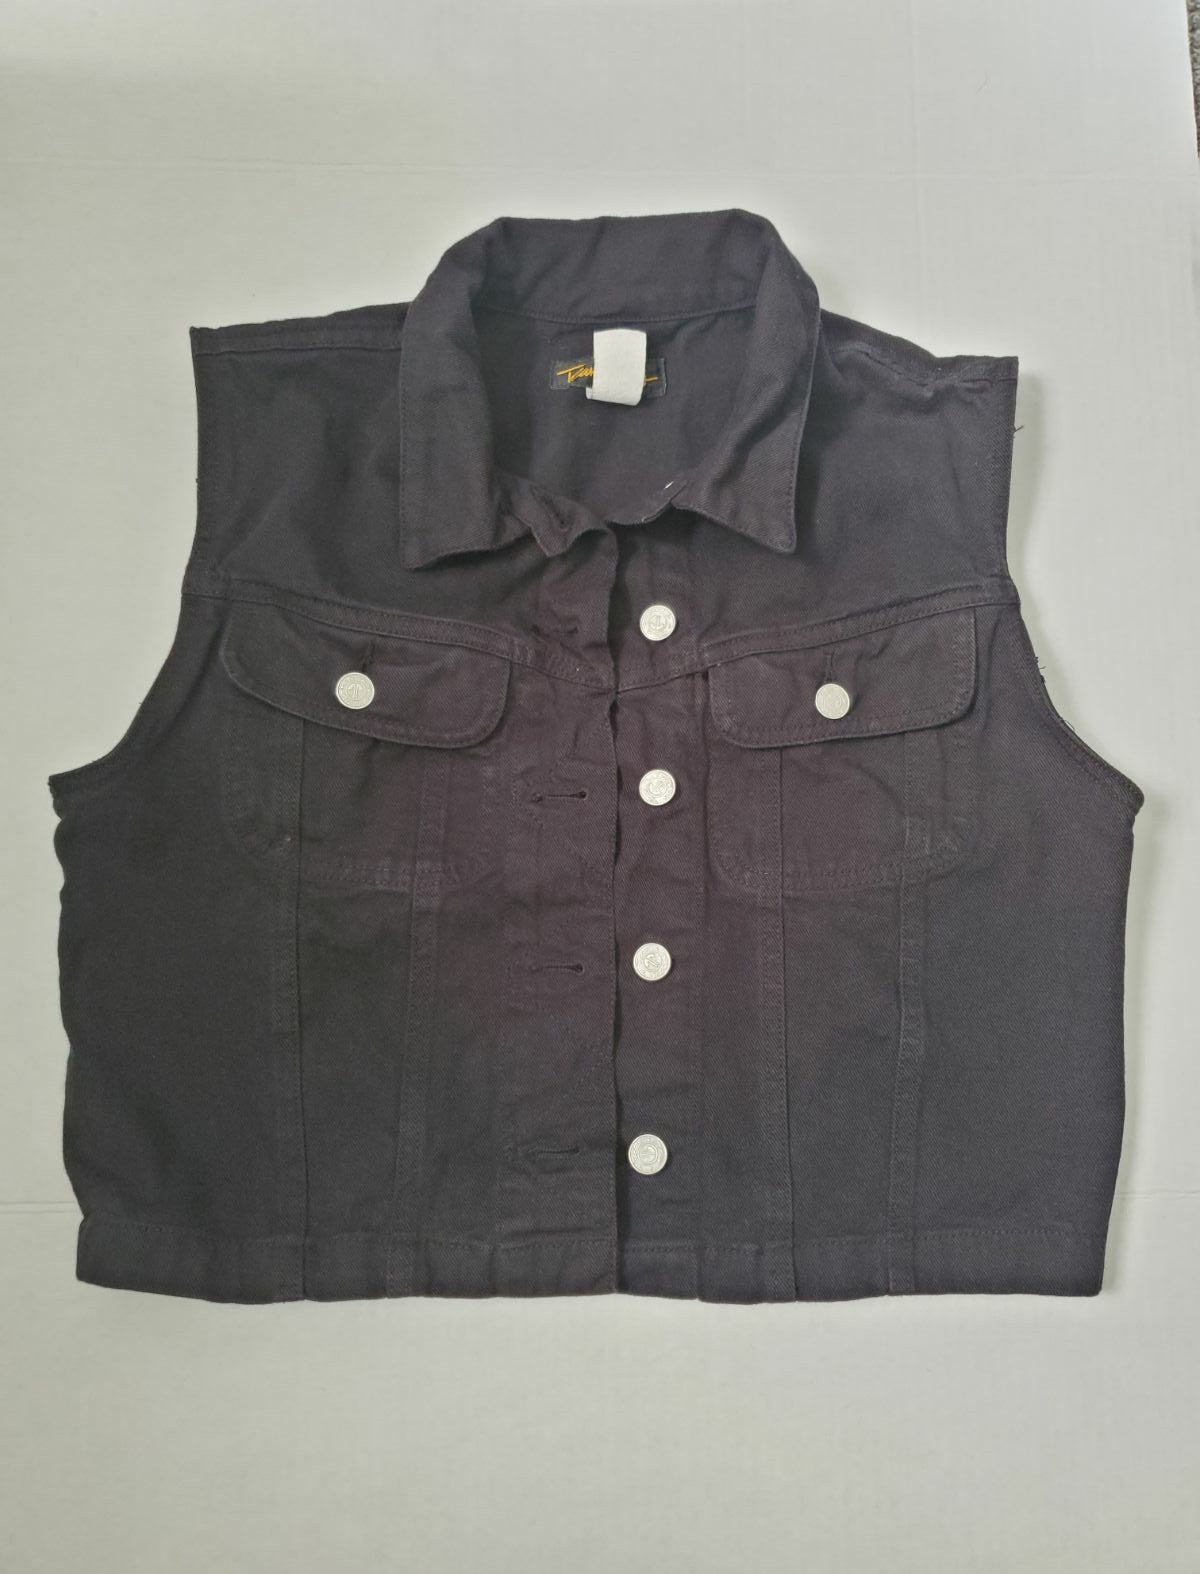 Denim vest made in the USA